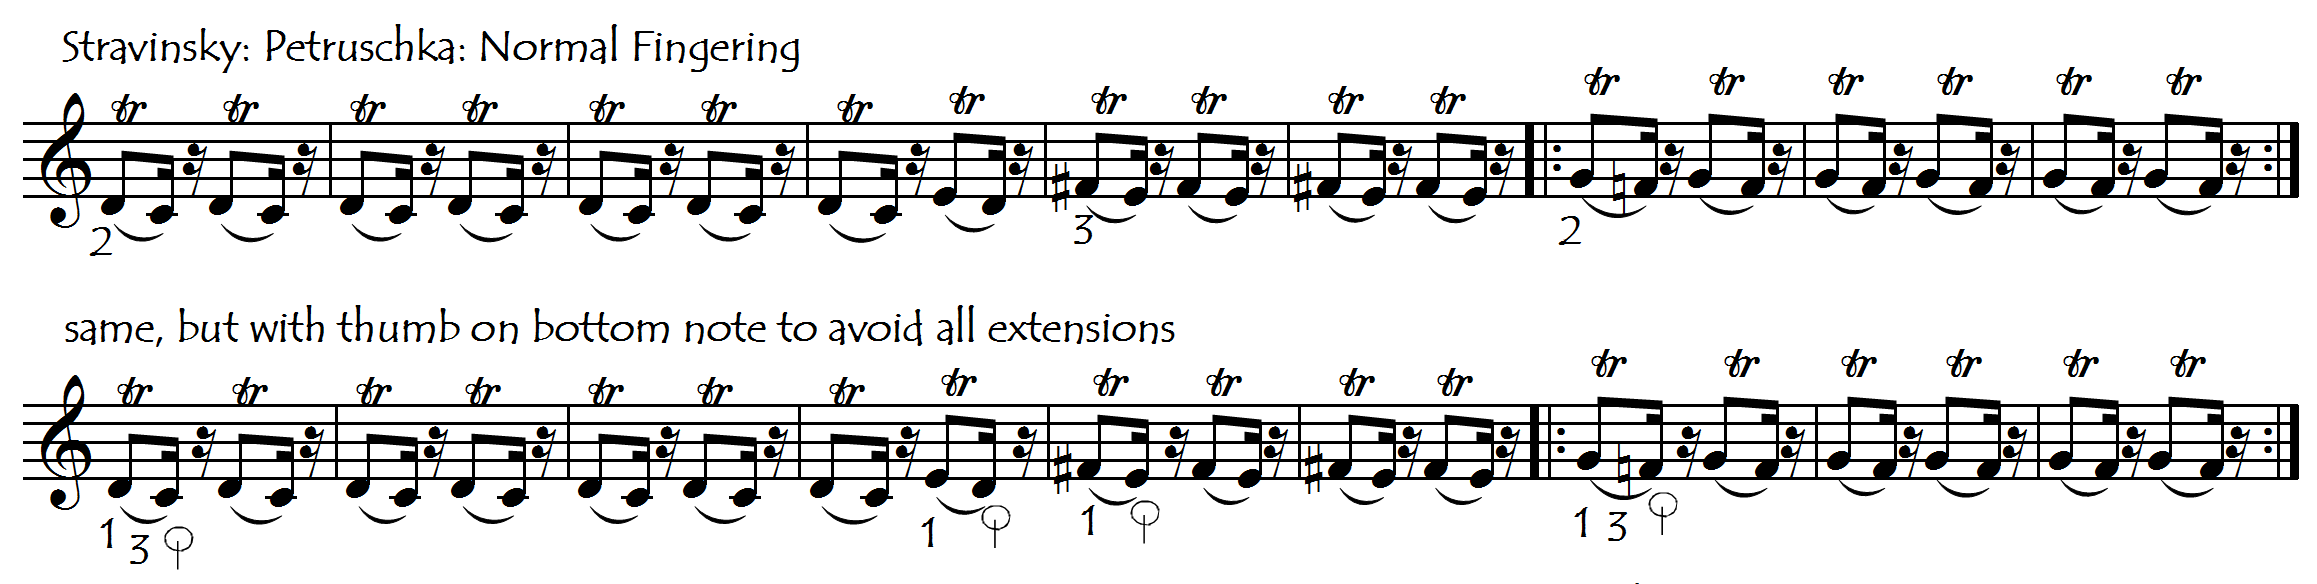 Cello Fun Trills and other Fast Ornaments in One Position